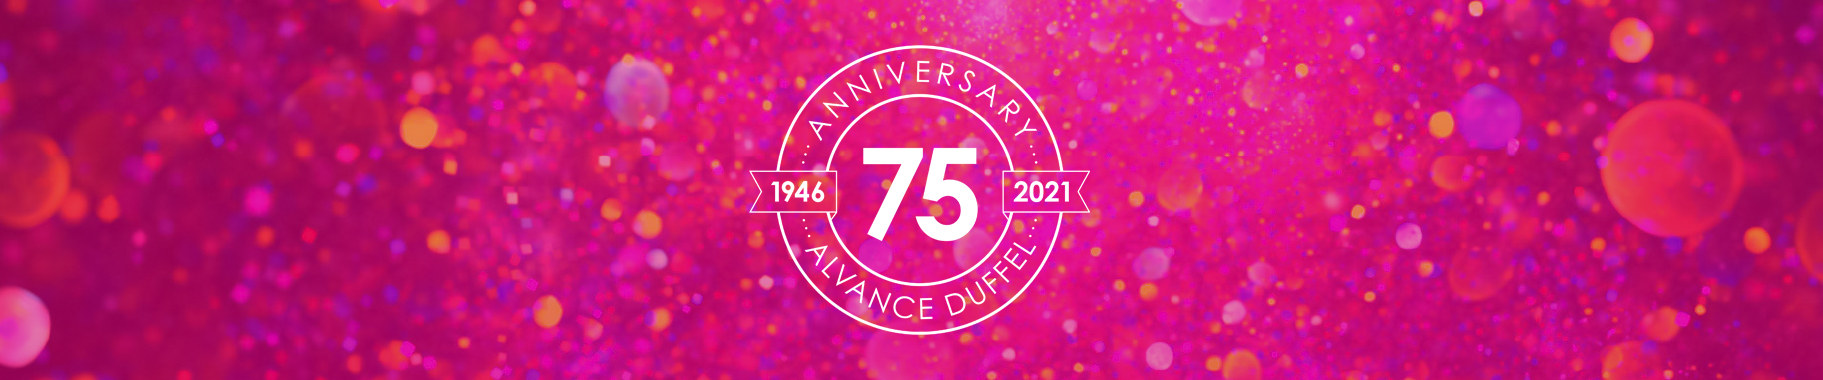 ALVANCE Aluminium Duffel celebrates its 75th anniversary and is looking for 50 new recruits